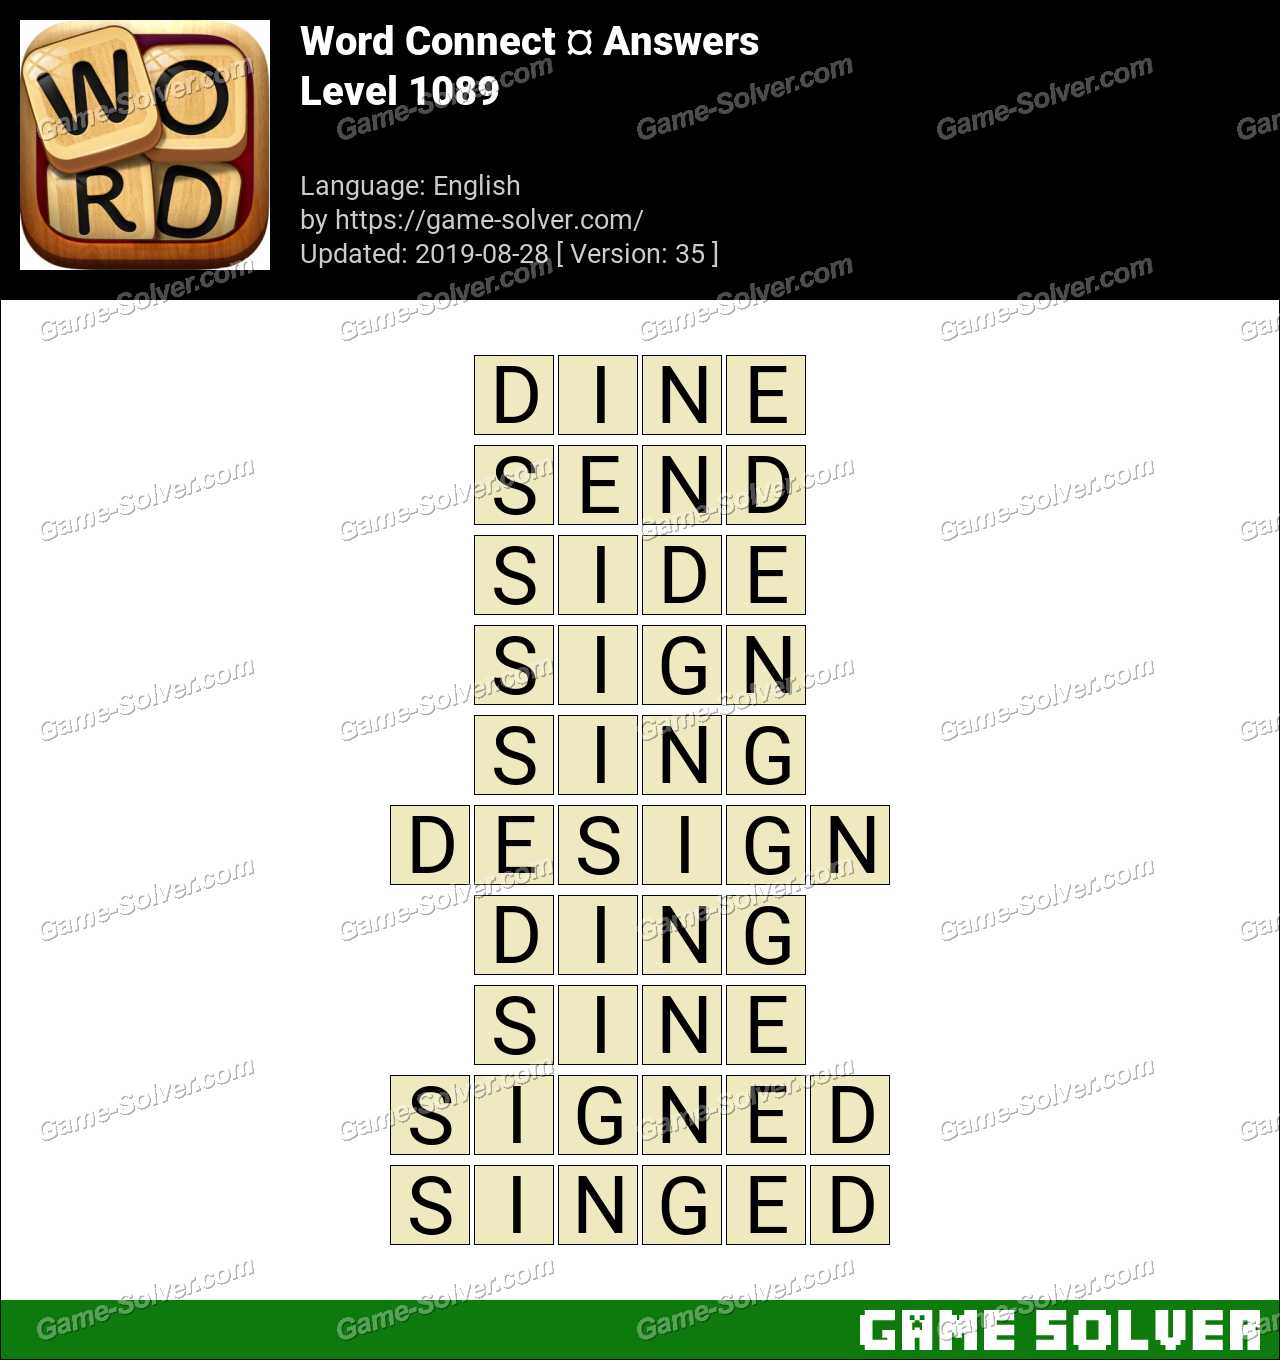 Word Connect Level 1089 Answers